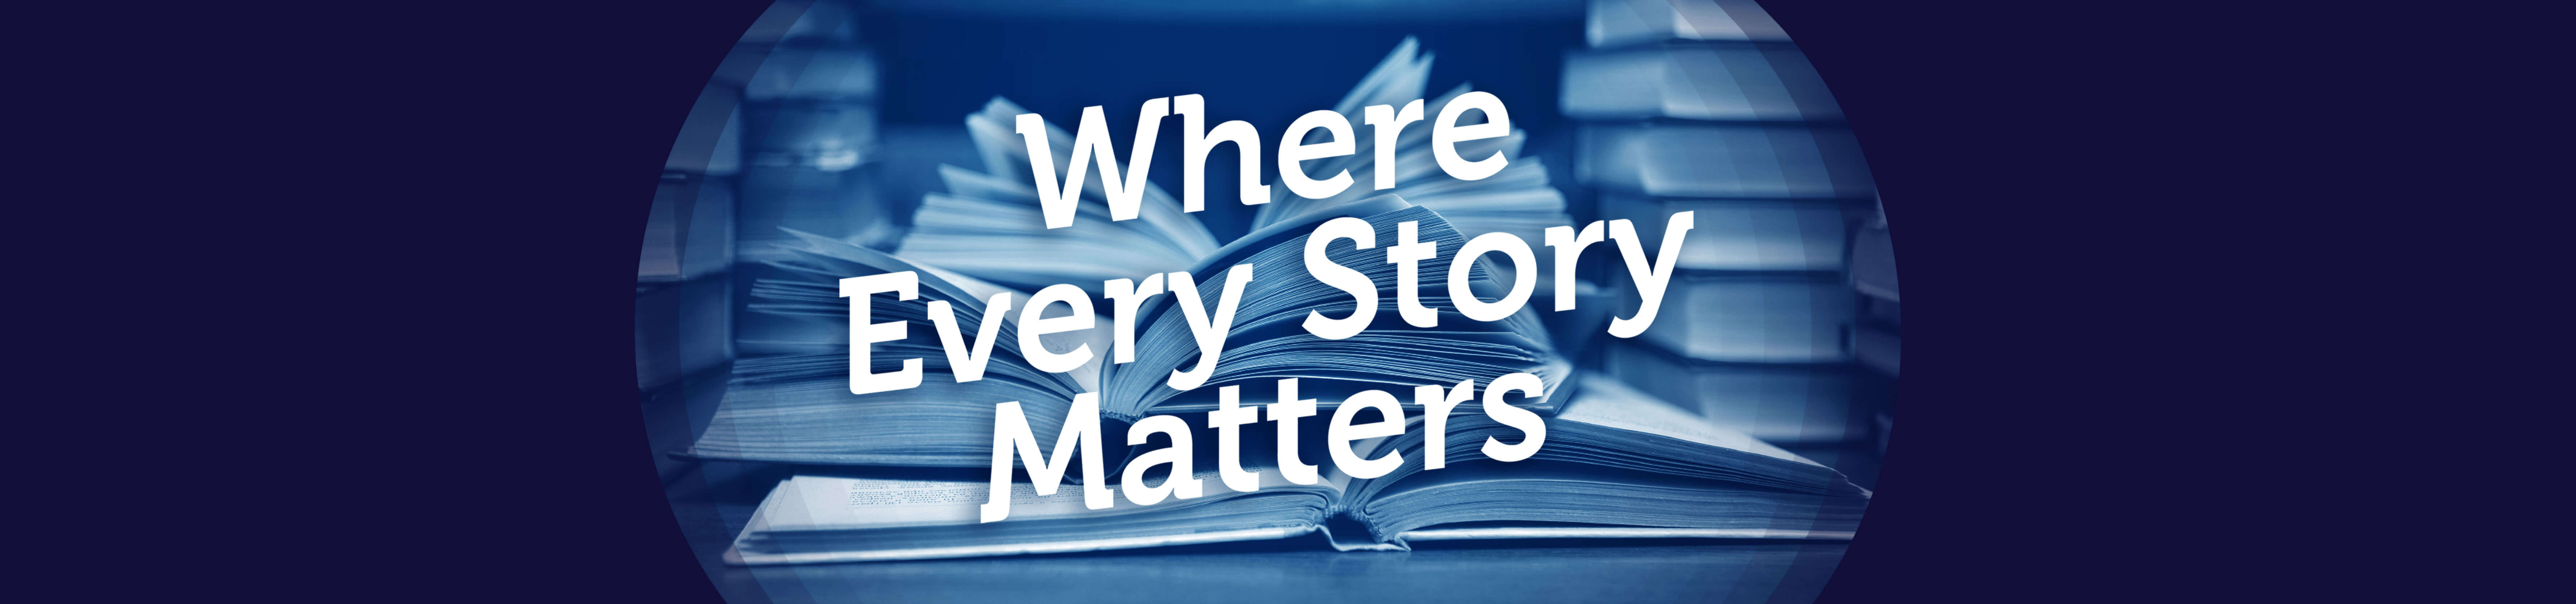 where-every-story-matters3400x800-5